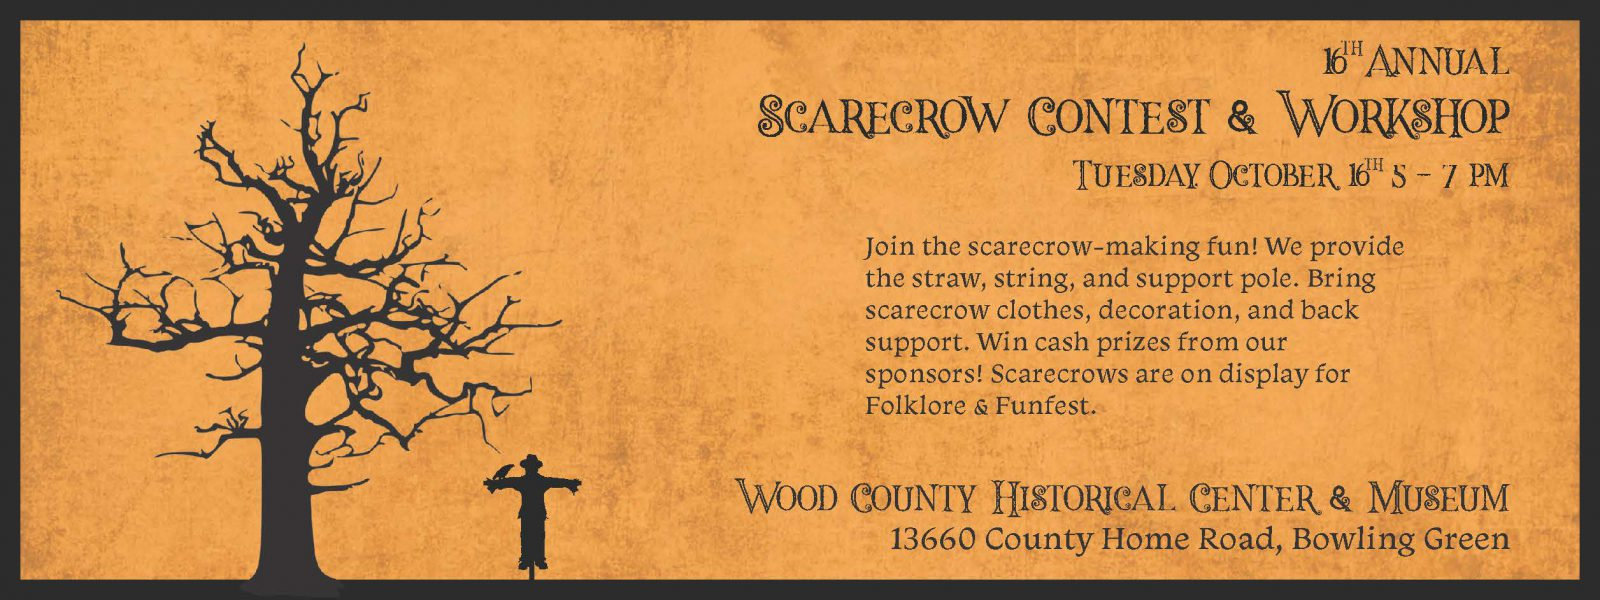 Scarecrow_website1